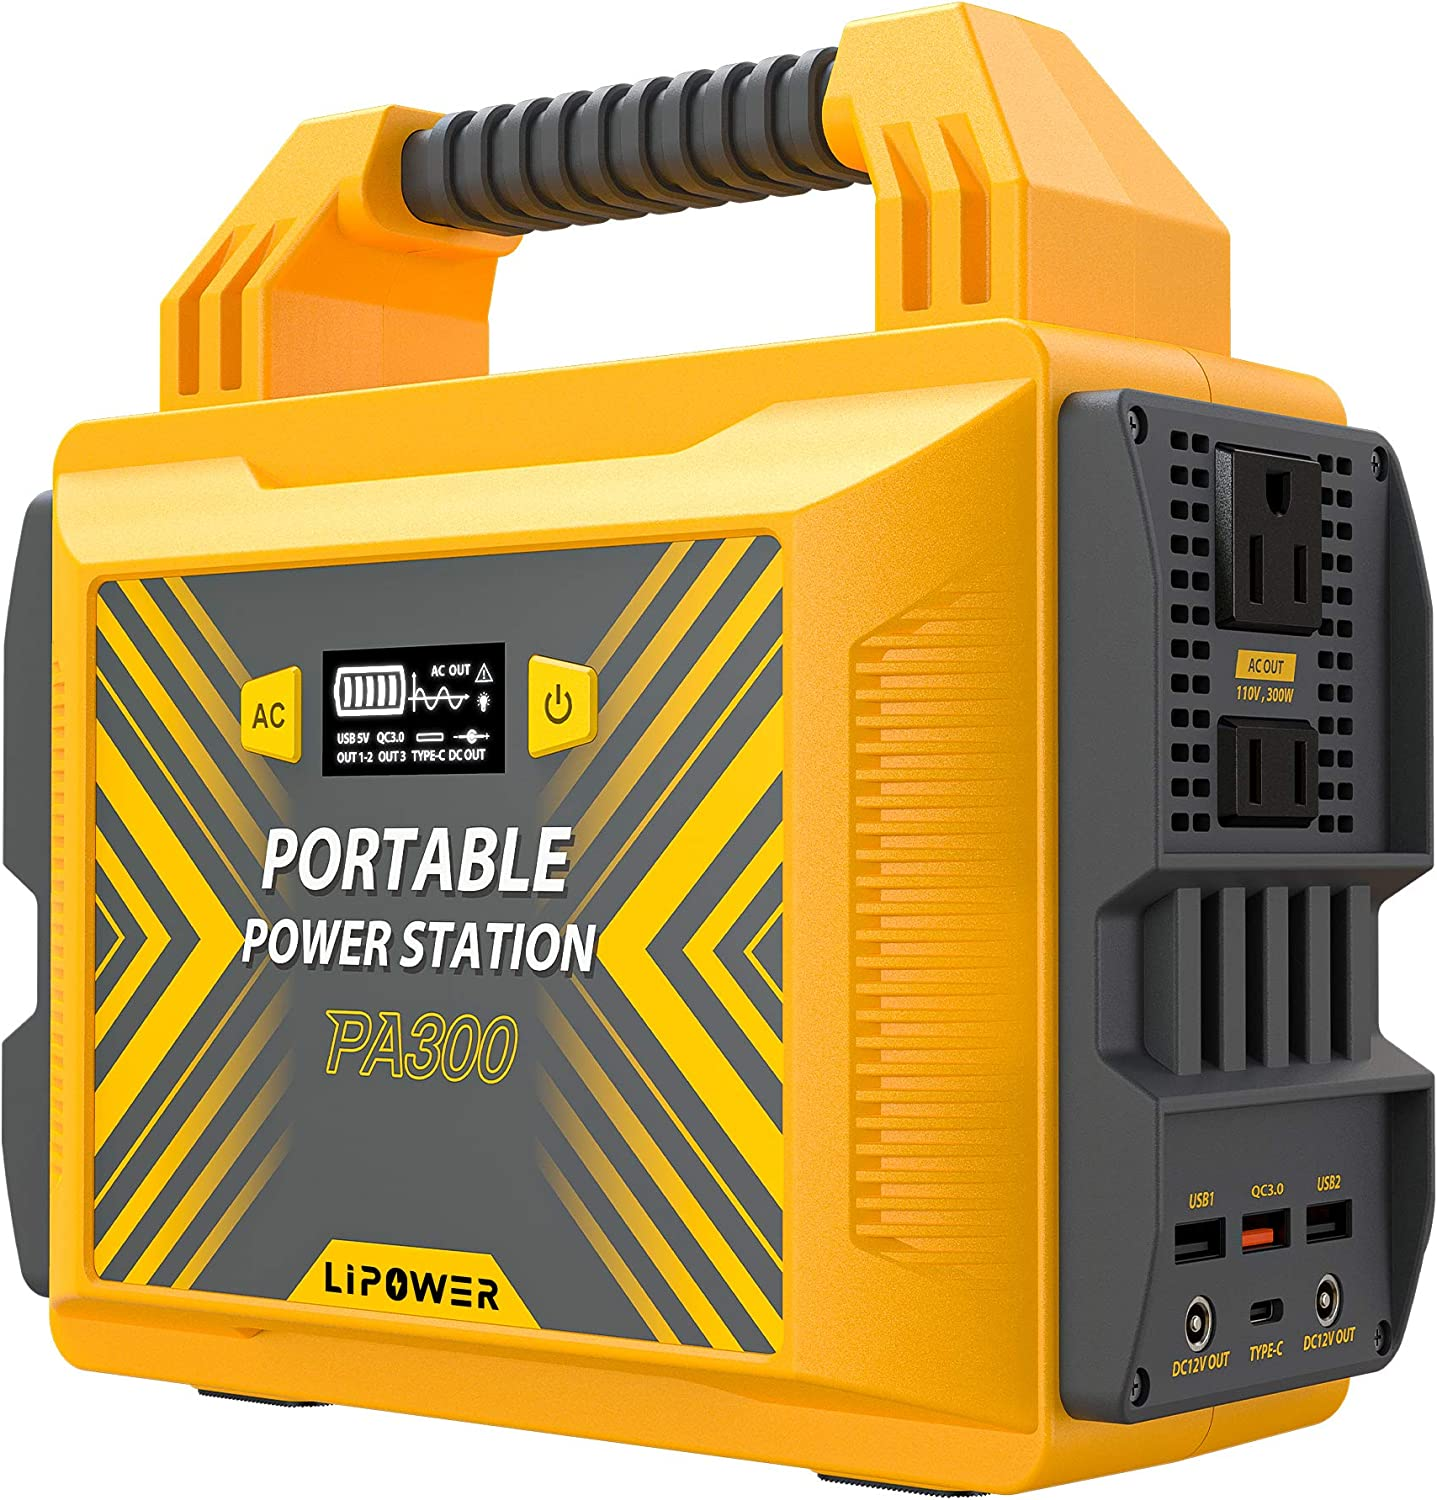 LIPOWER 300W Portable Power Station PA300, 296Wh/80000mAh Outdoor Solar Generator Power Supply (Solar Panel Not Included) , 110V Pure Sine Wave AC Outlet, 2 DC Ports, QC3.0 Port for Road Trip Camping